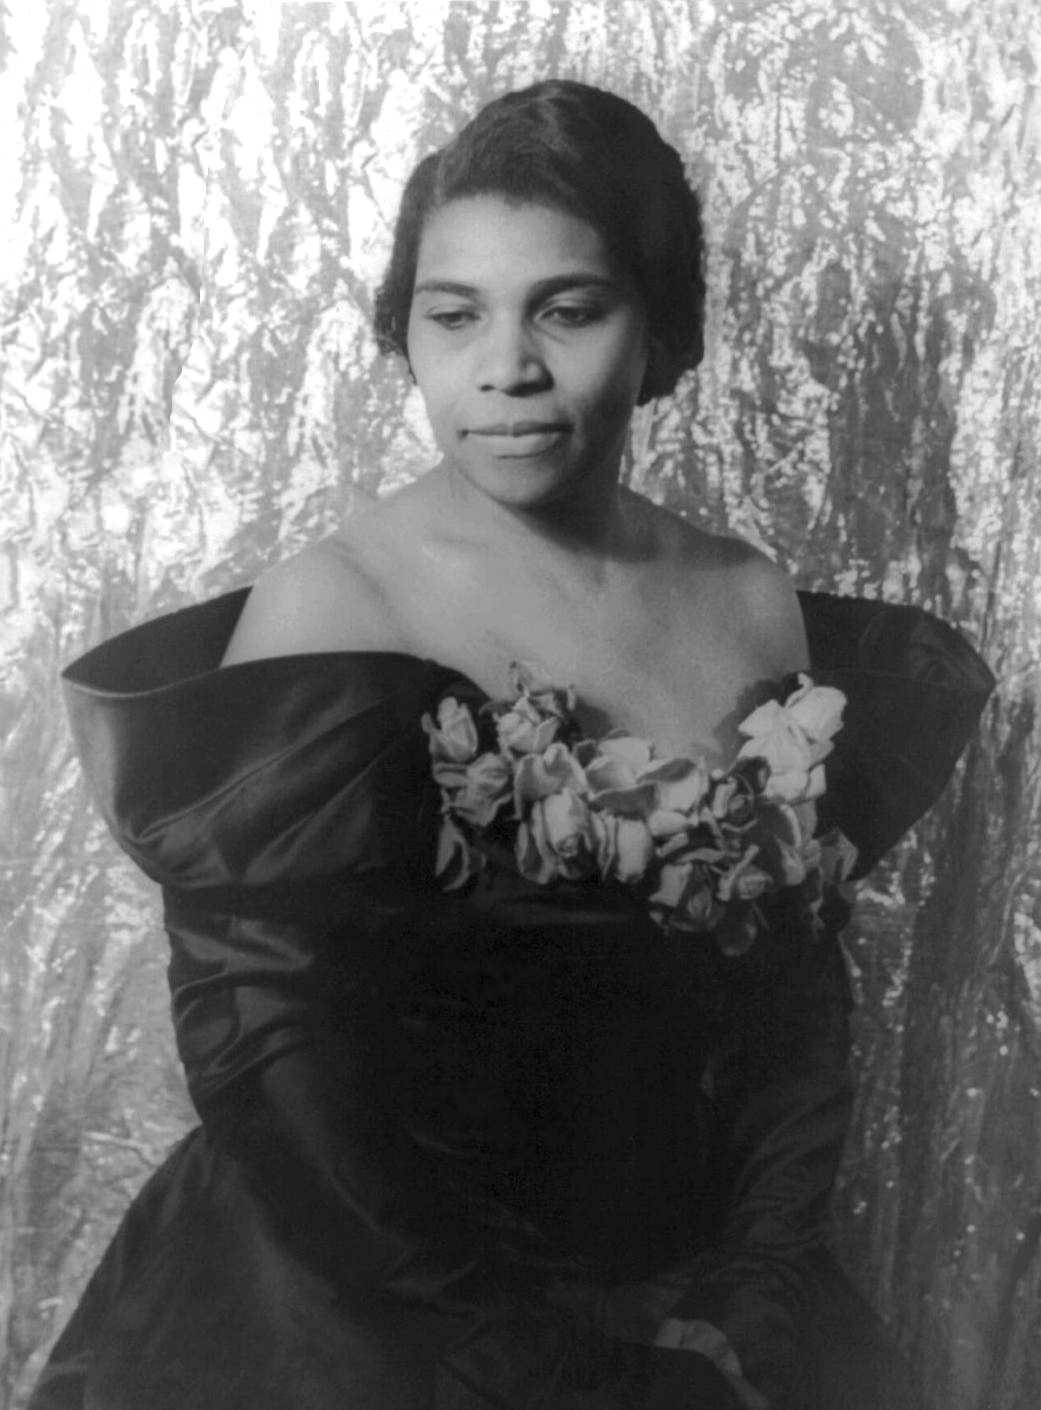 Black and white photo of famed black contralto Marian Anderson in 1940. She is wearing a dawk off-the-shoulder gown with flowers in the front and hair pulled back. Hands are clasped in front as the looks away from camera.